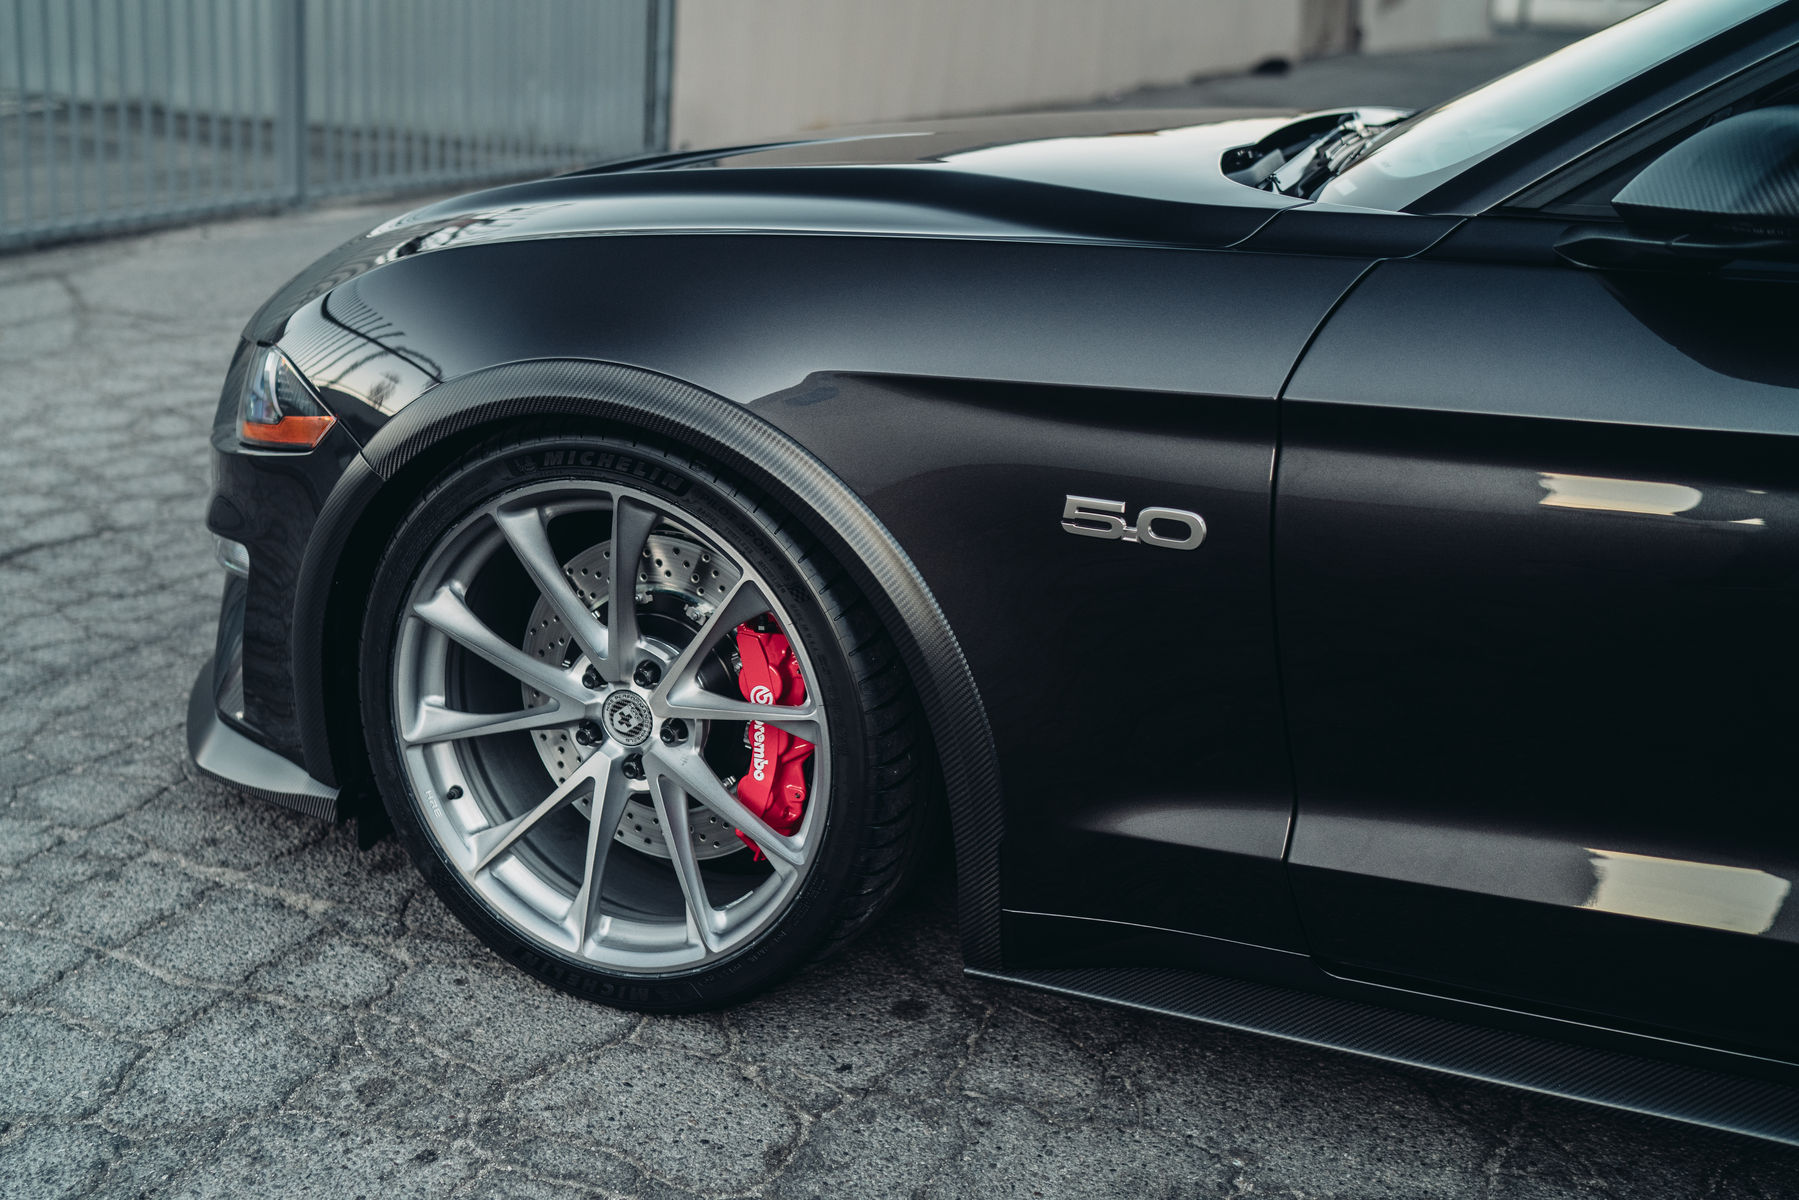 2018 Ford Mustang Gt Convertible By Sdkore Performance Group Fordsema